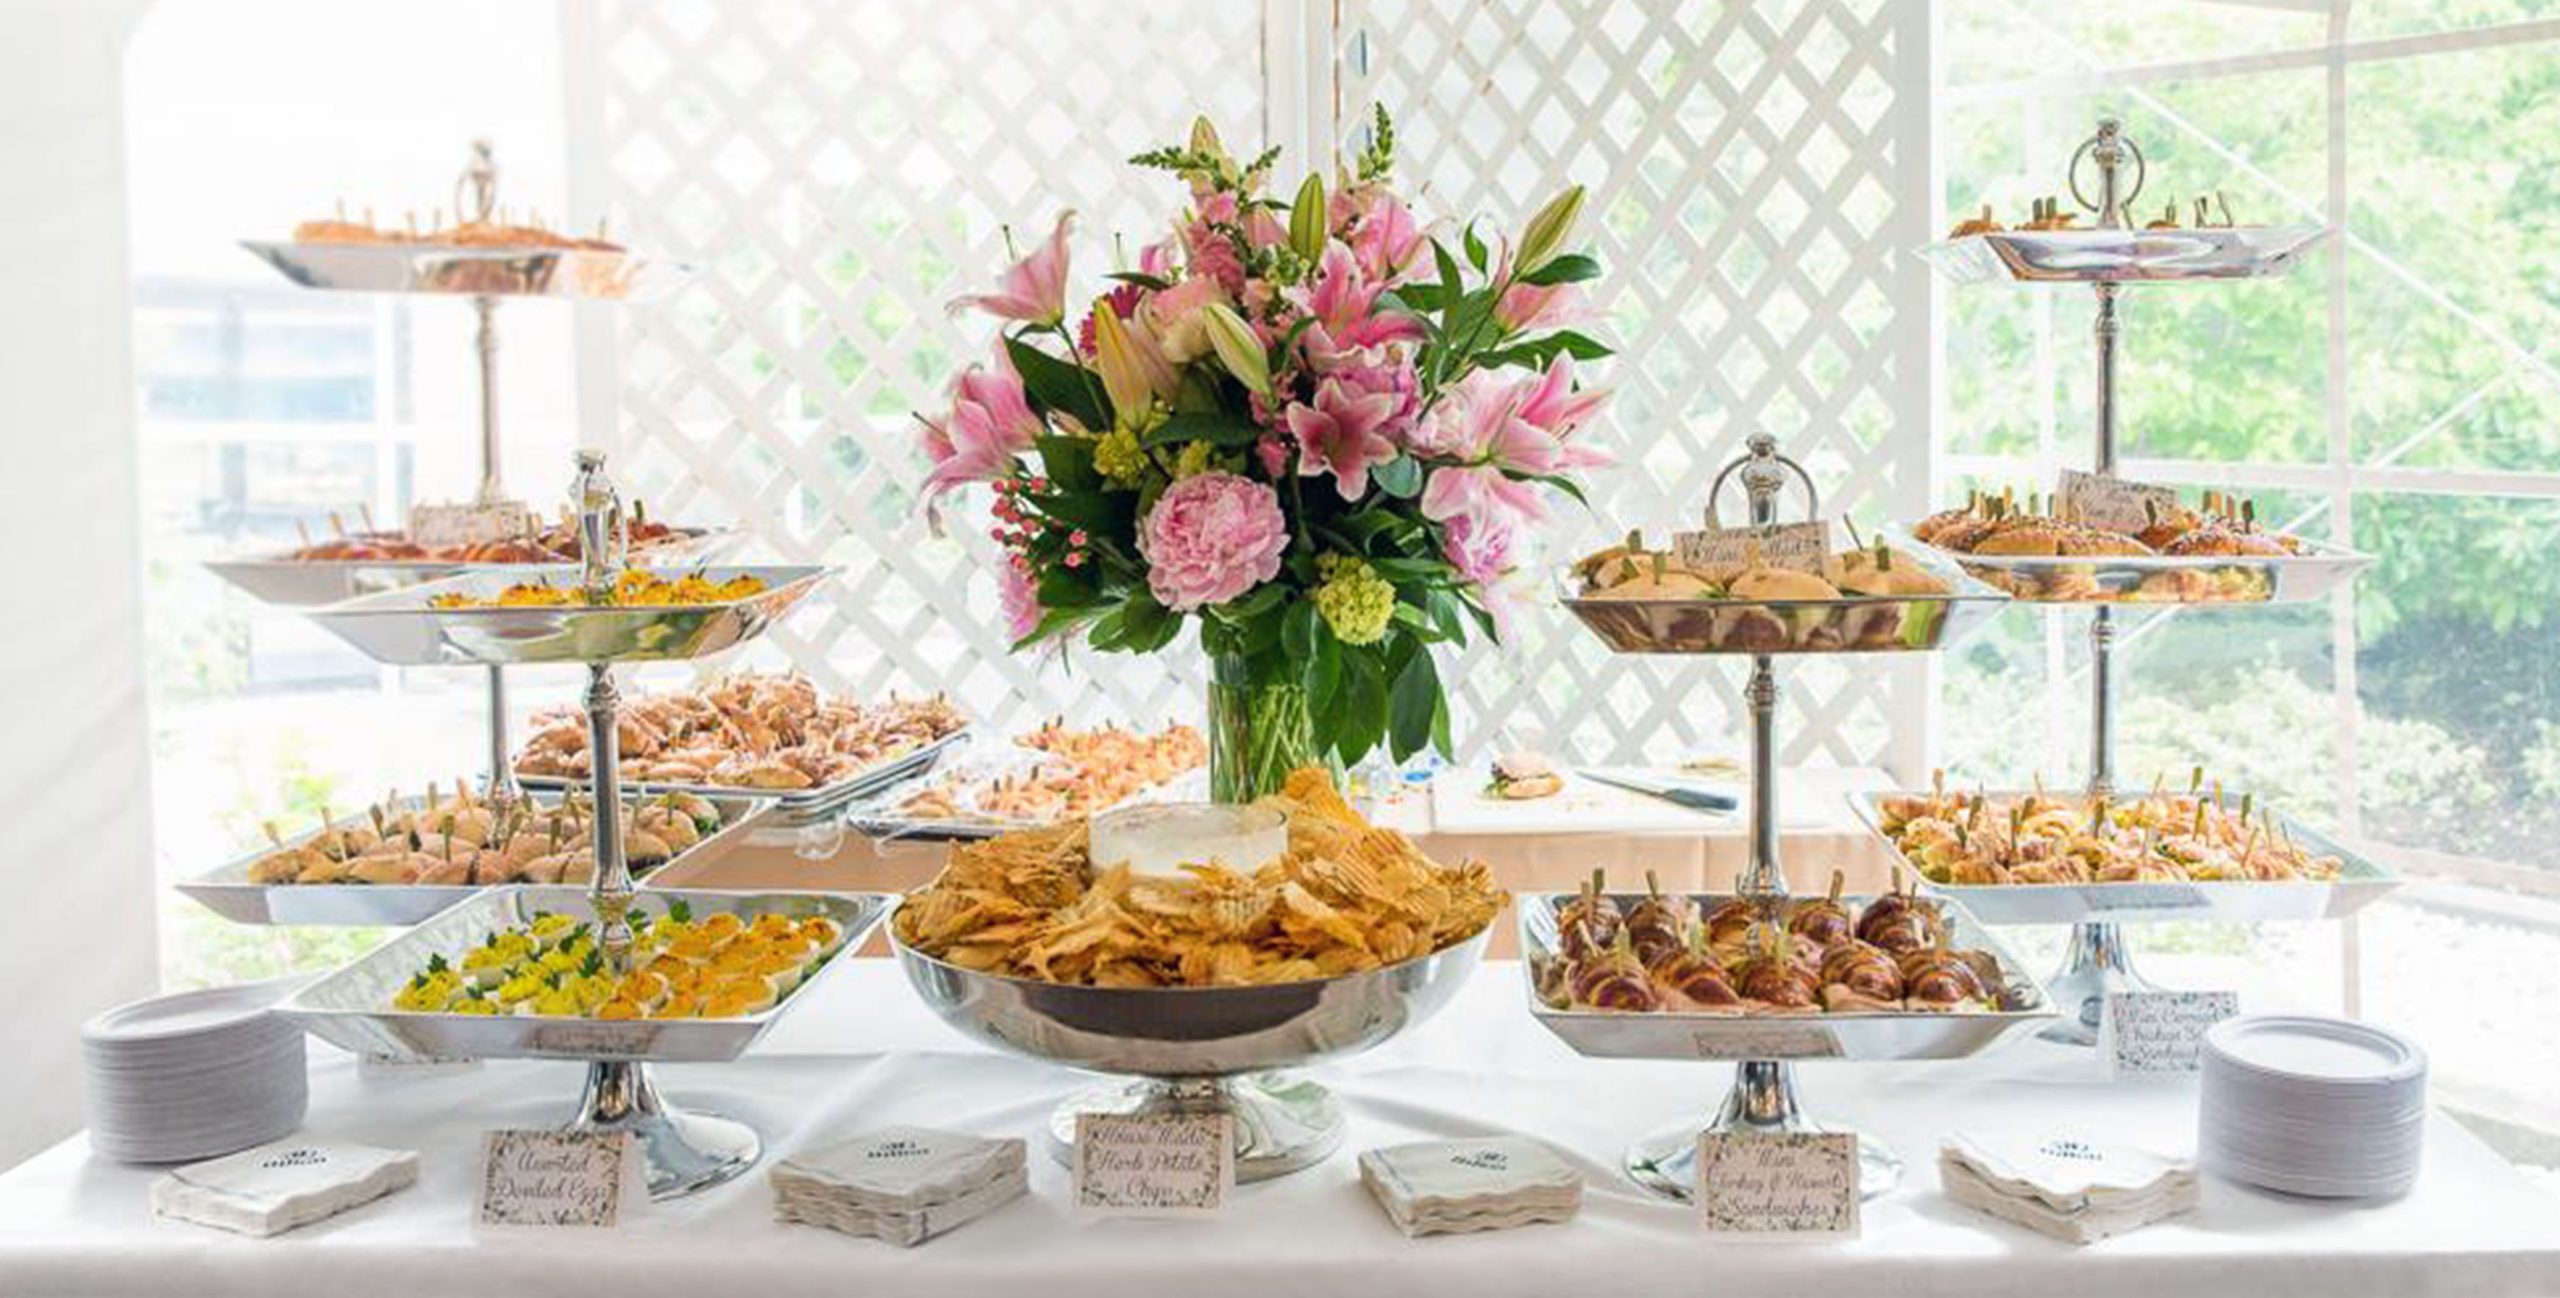 Palmer's Catering - Voted Best Caterer Darien, Rowayton & New Canaan